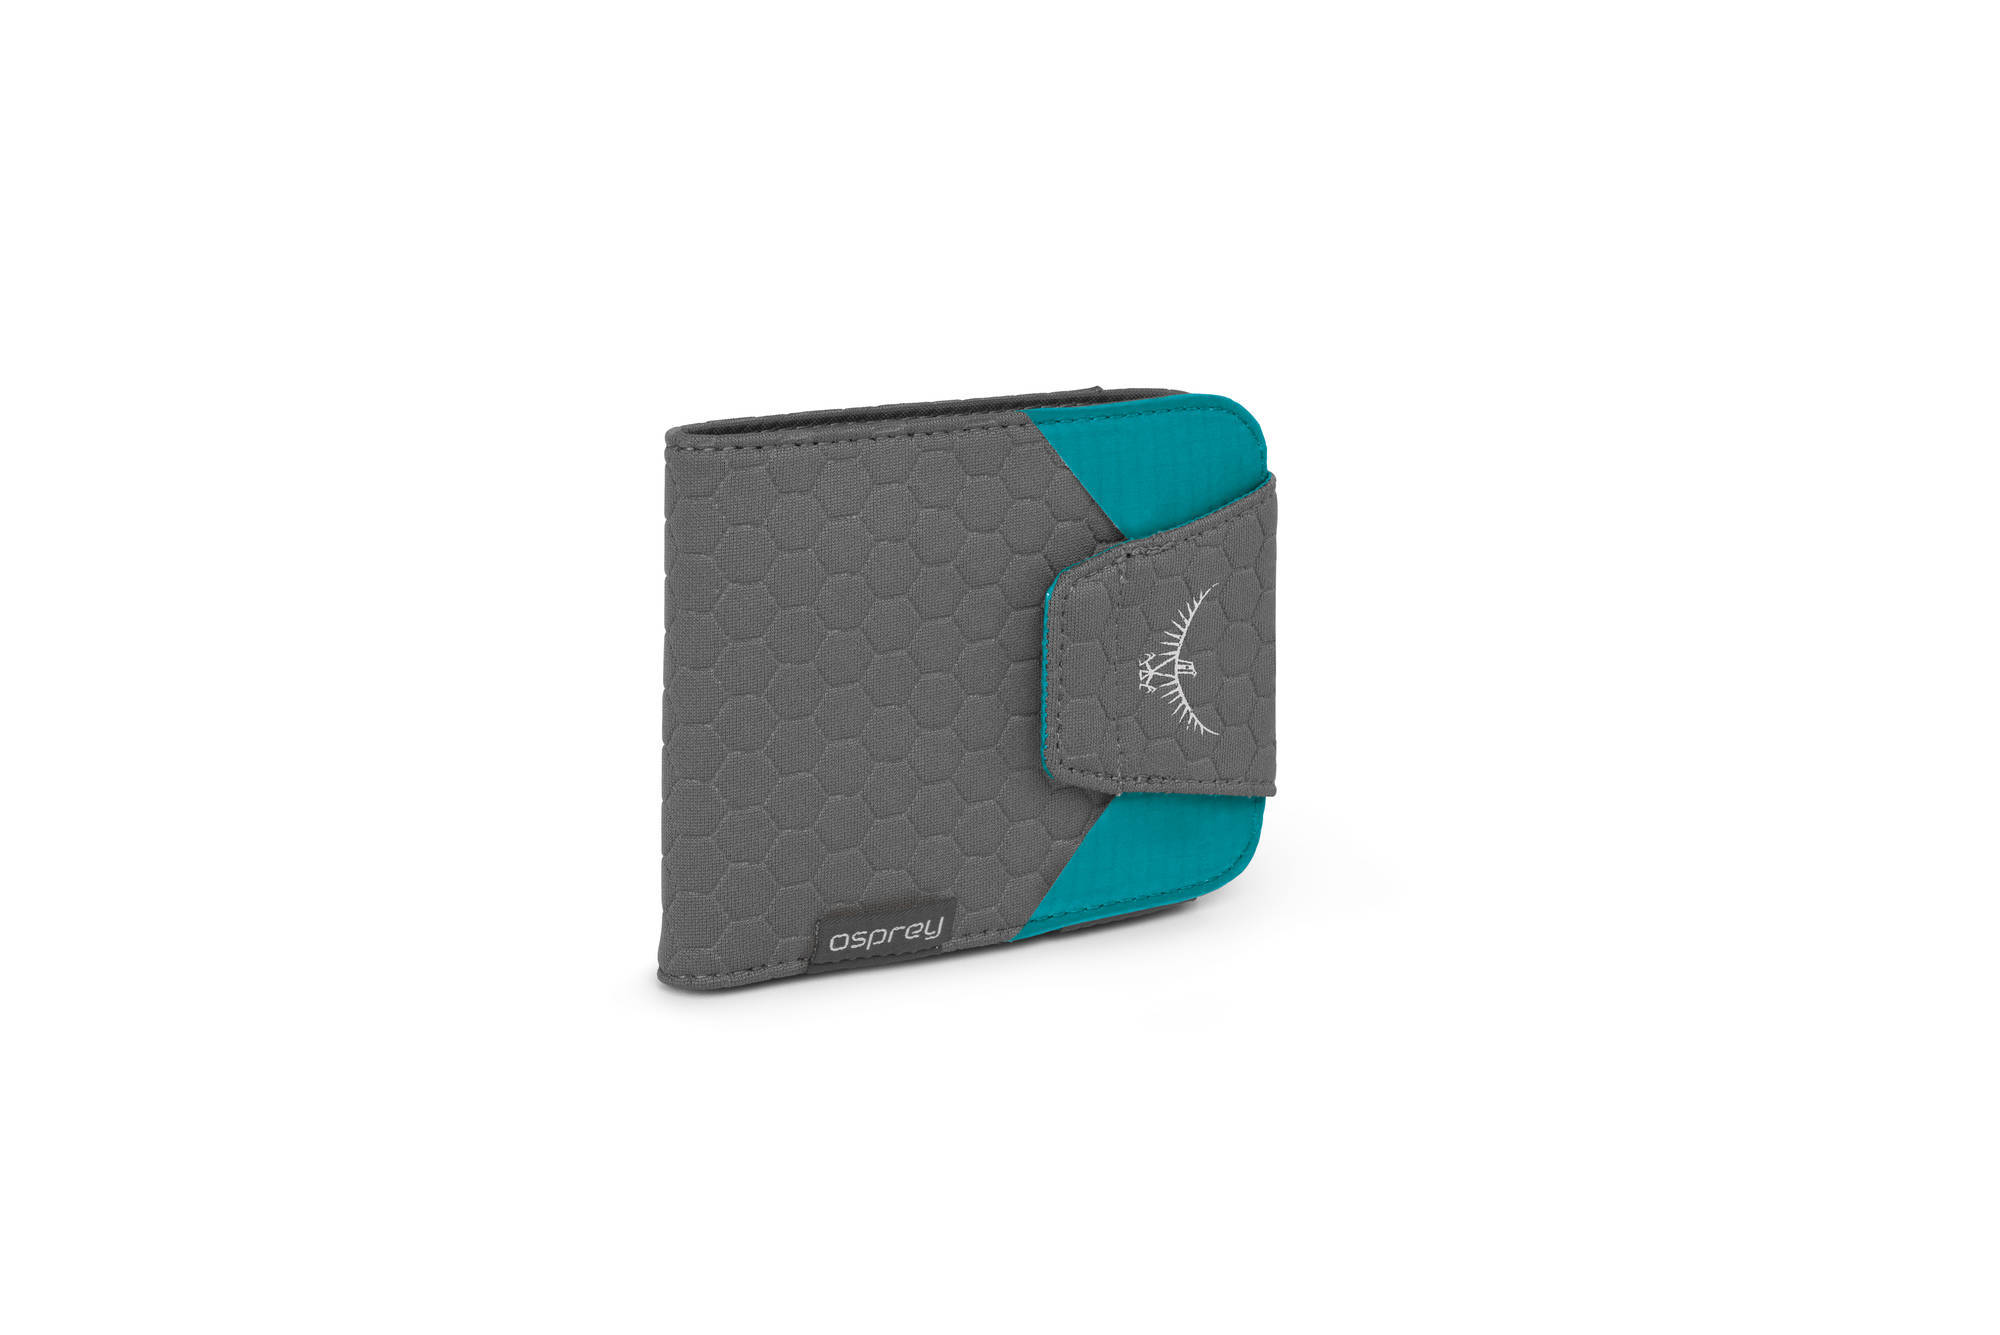 Аксессуары Кошелек Osprey QuickLock RFID Wallet Tropic Teal Quicklock_Wallet_Side_Tropic_Teal_web.jpg